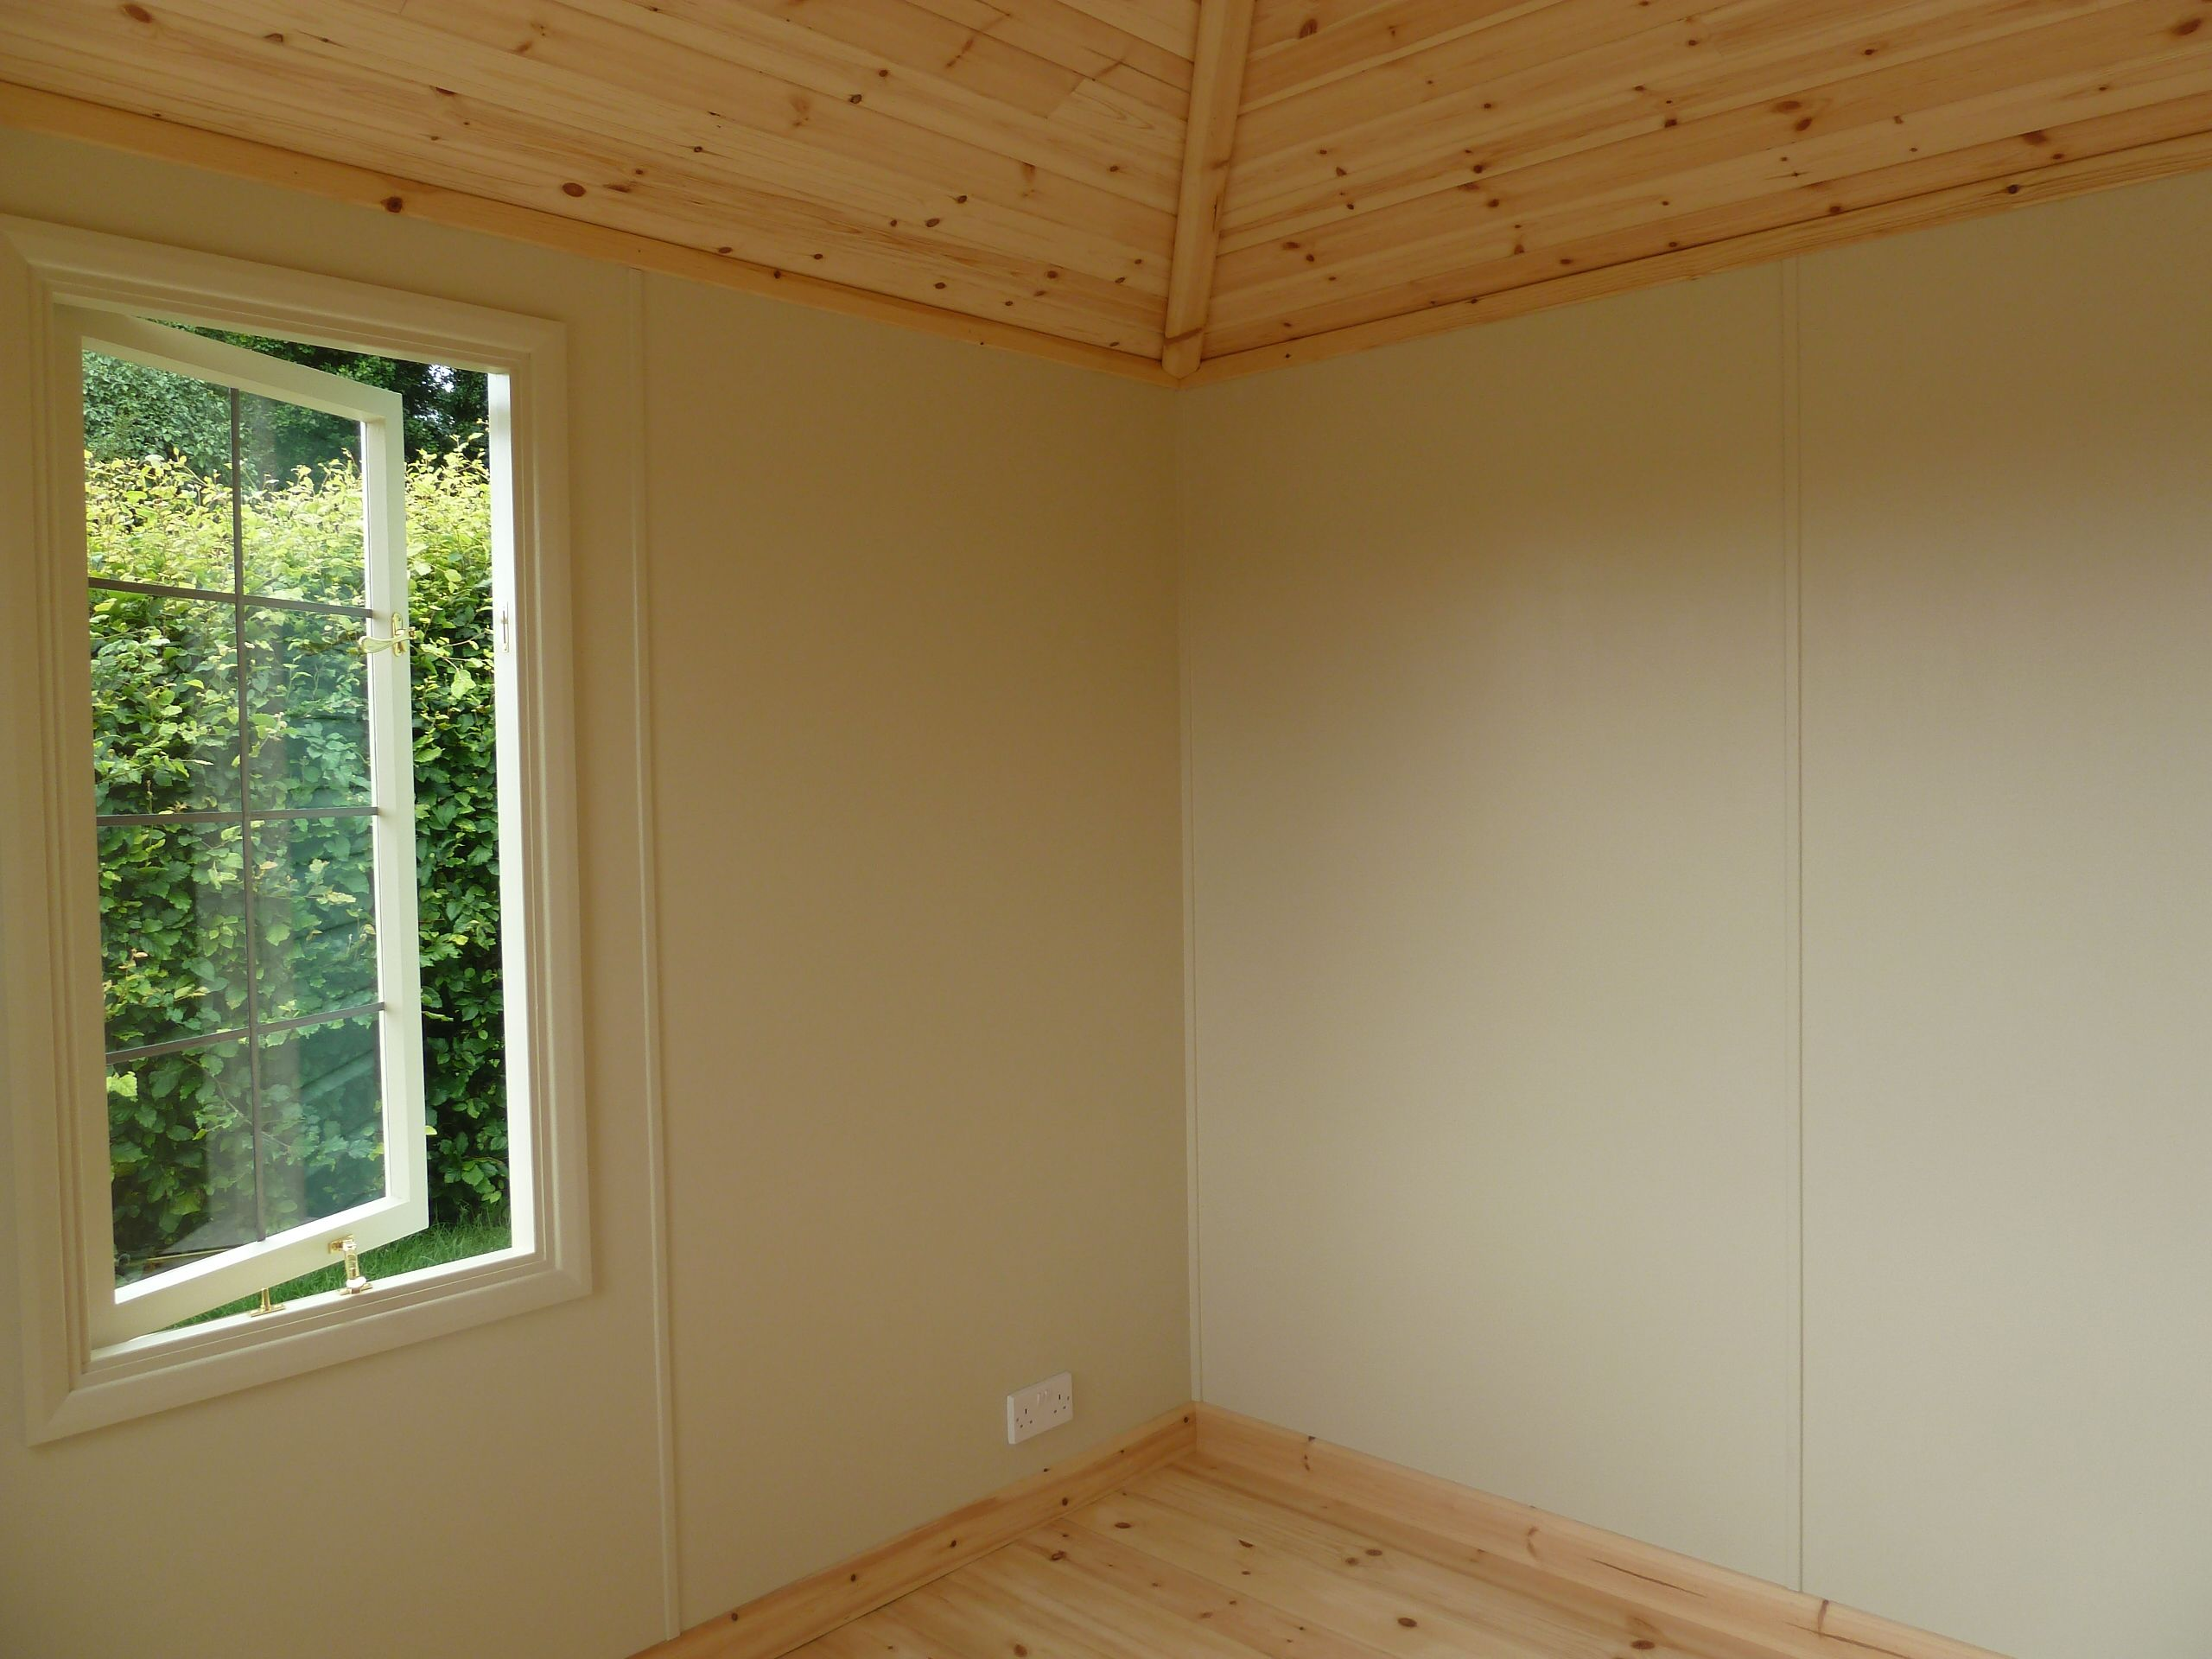 Summerhouse interior lined in painted ply and pine tgv. The Handmade ...